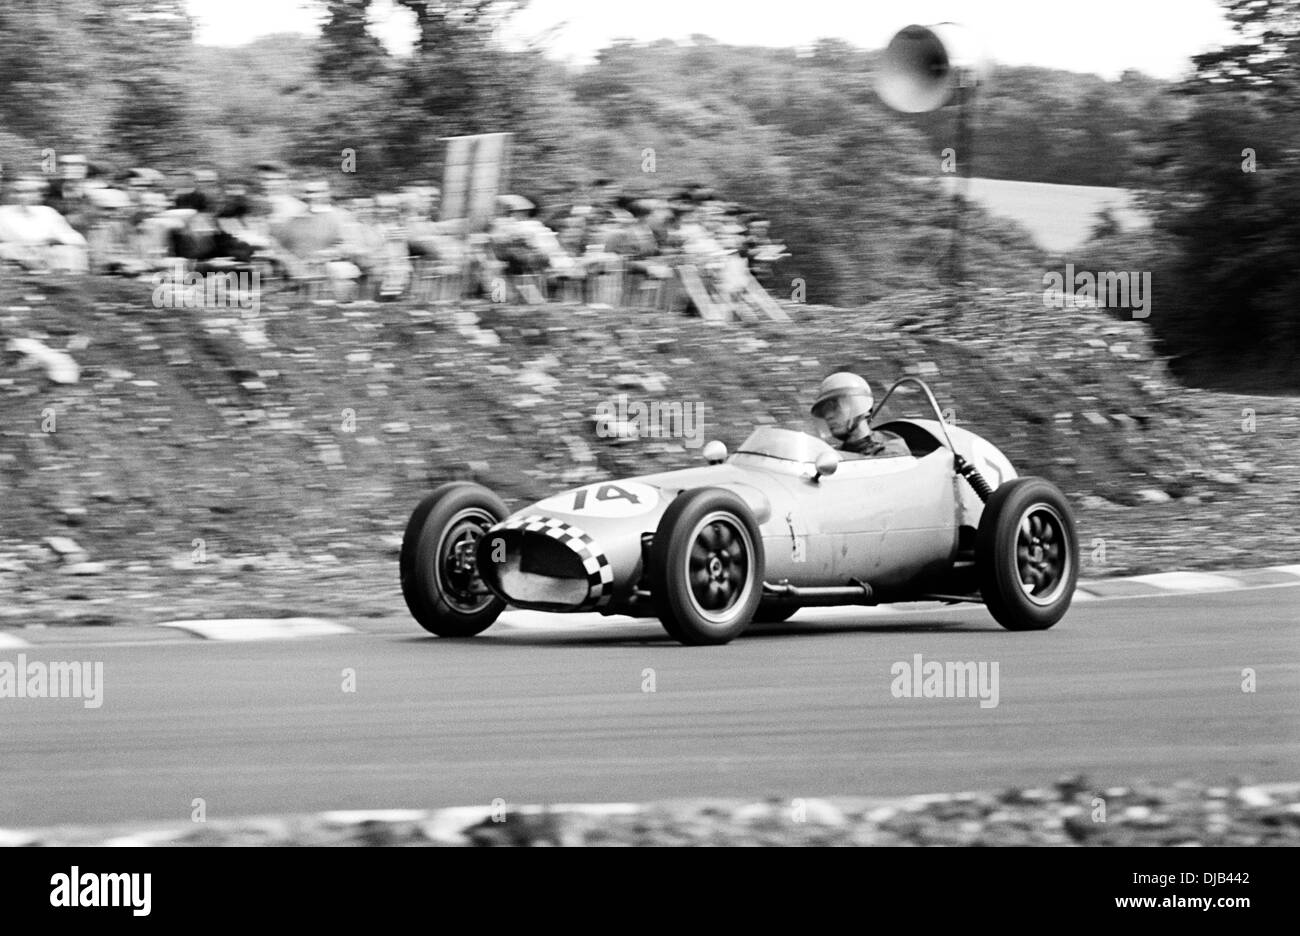 Vintage Racing Car Stock Photos & Vintage Racing Car Stock Images ...